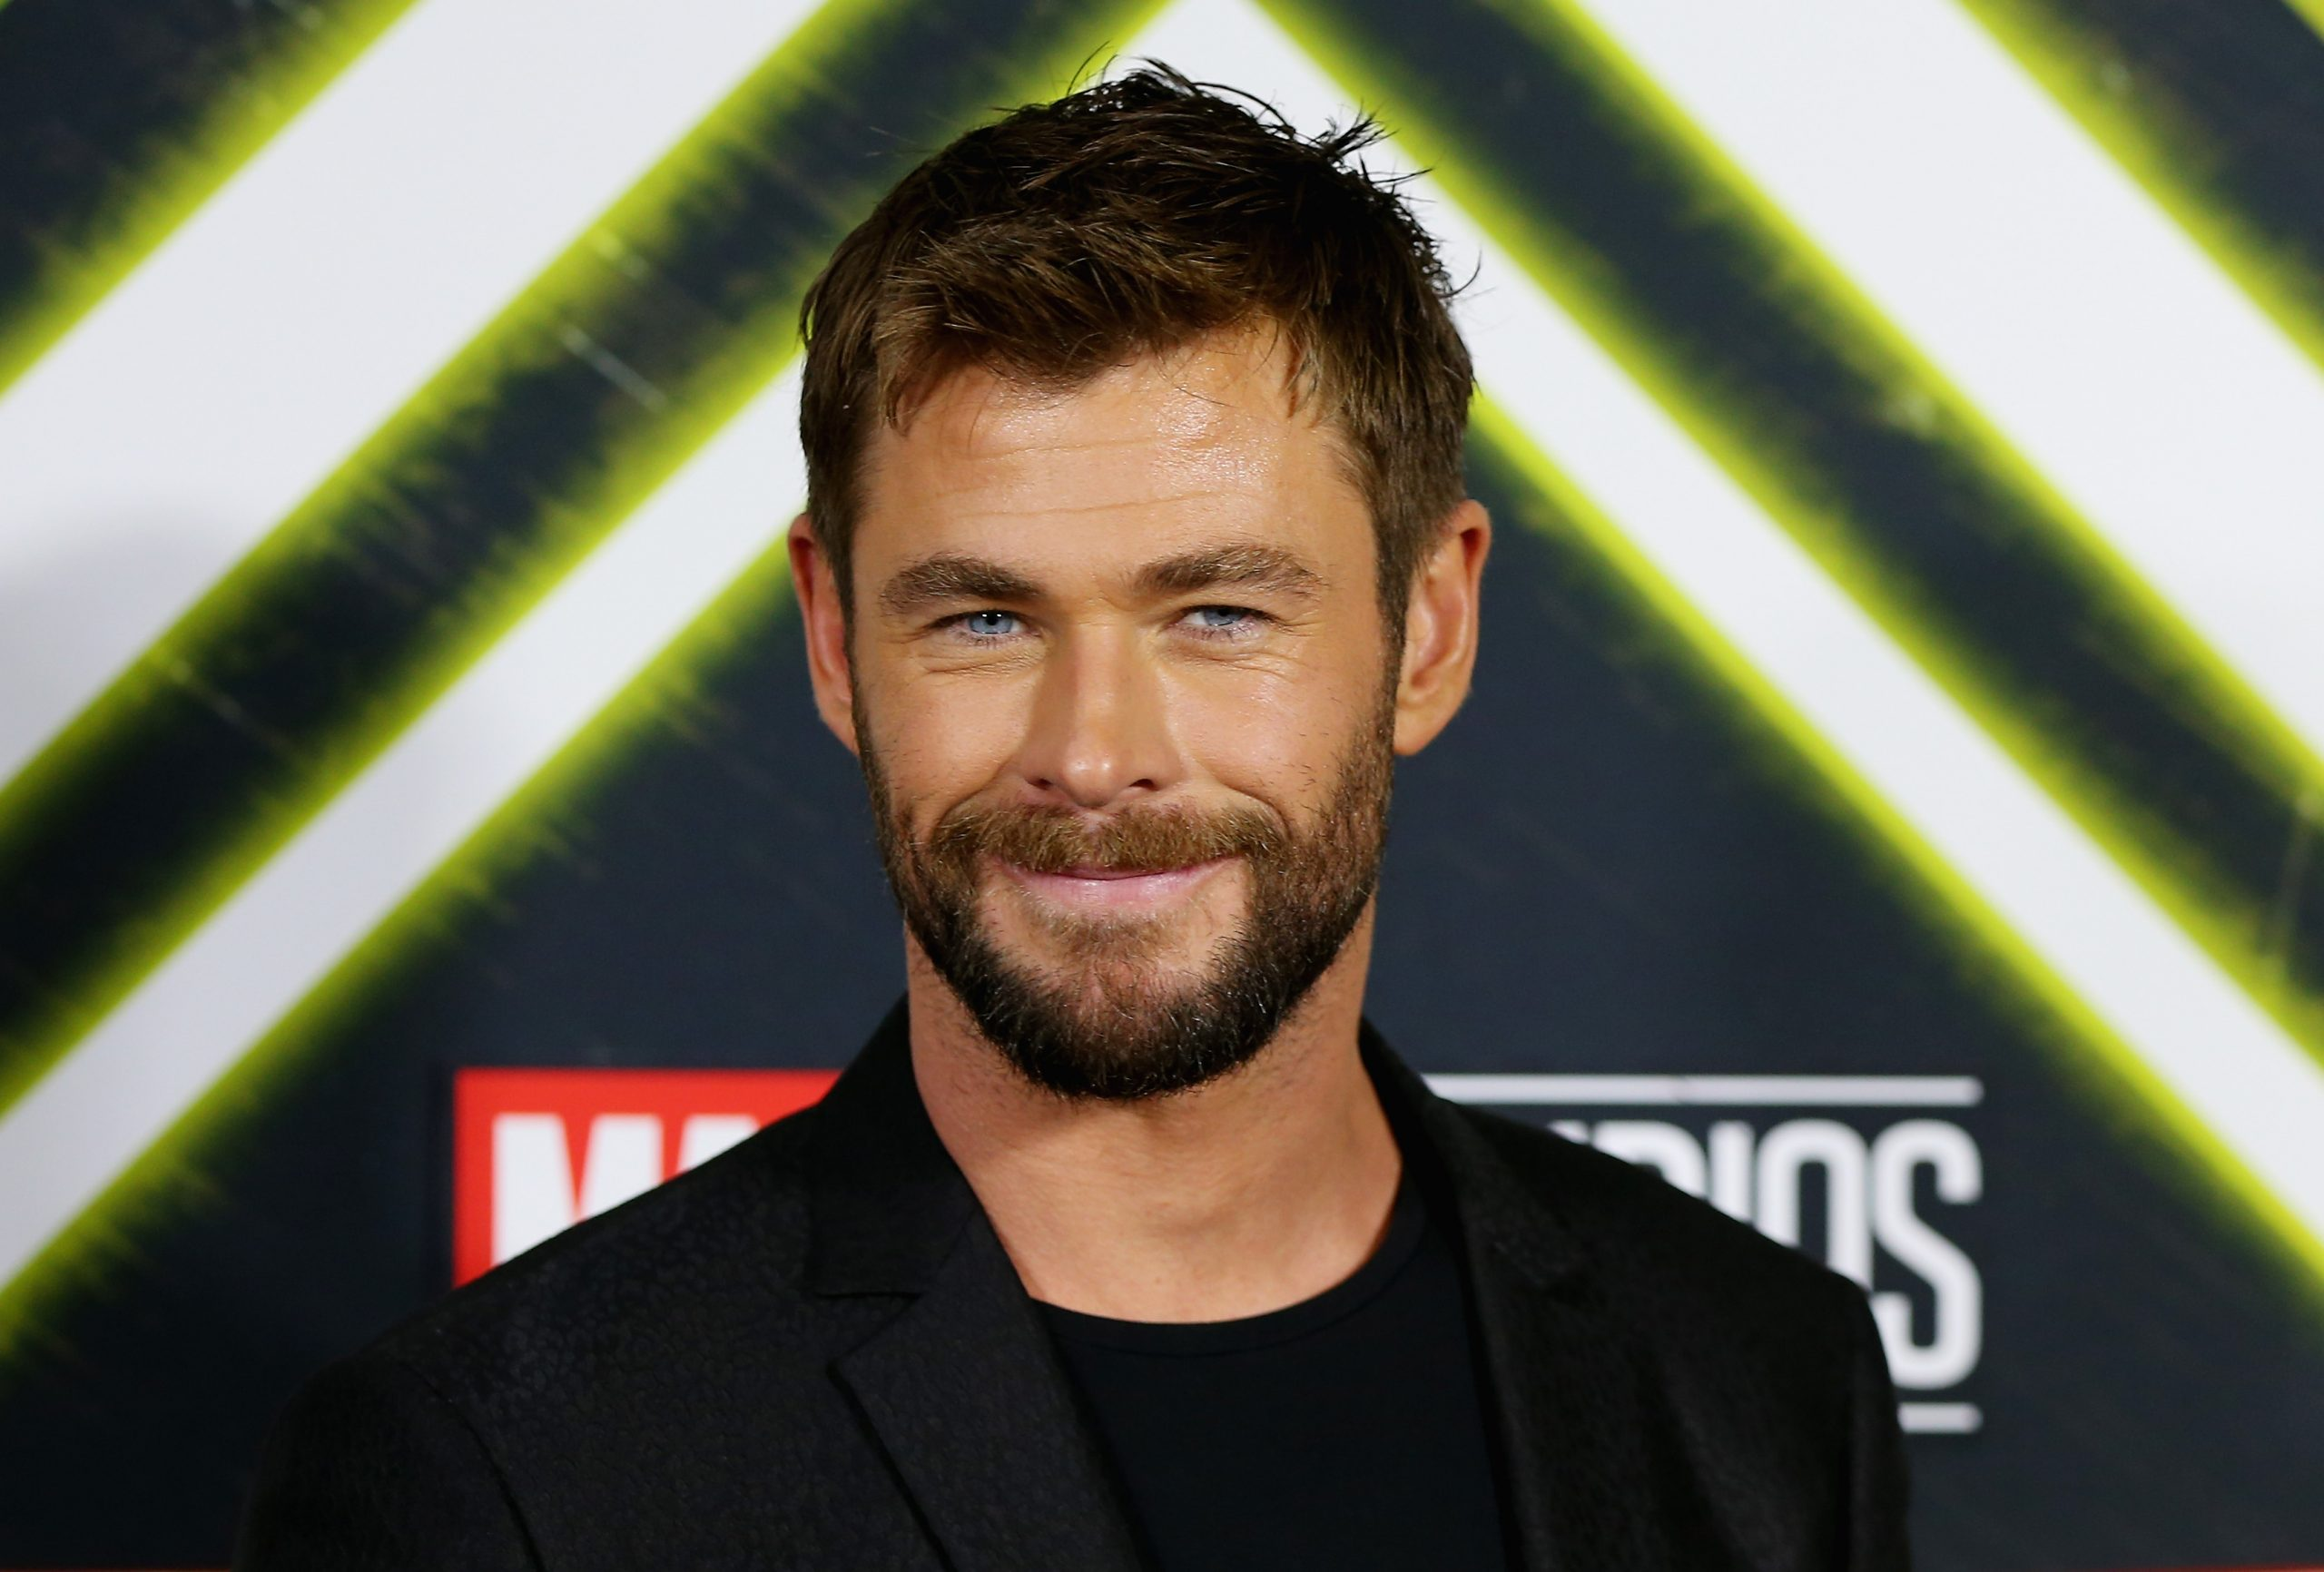 Chris Hemsworth, star of 'What If...?' Season 1 Episode 7 wears a black suit over a black shirt.